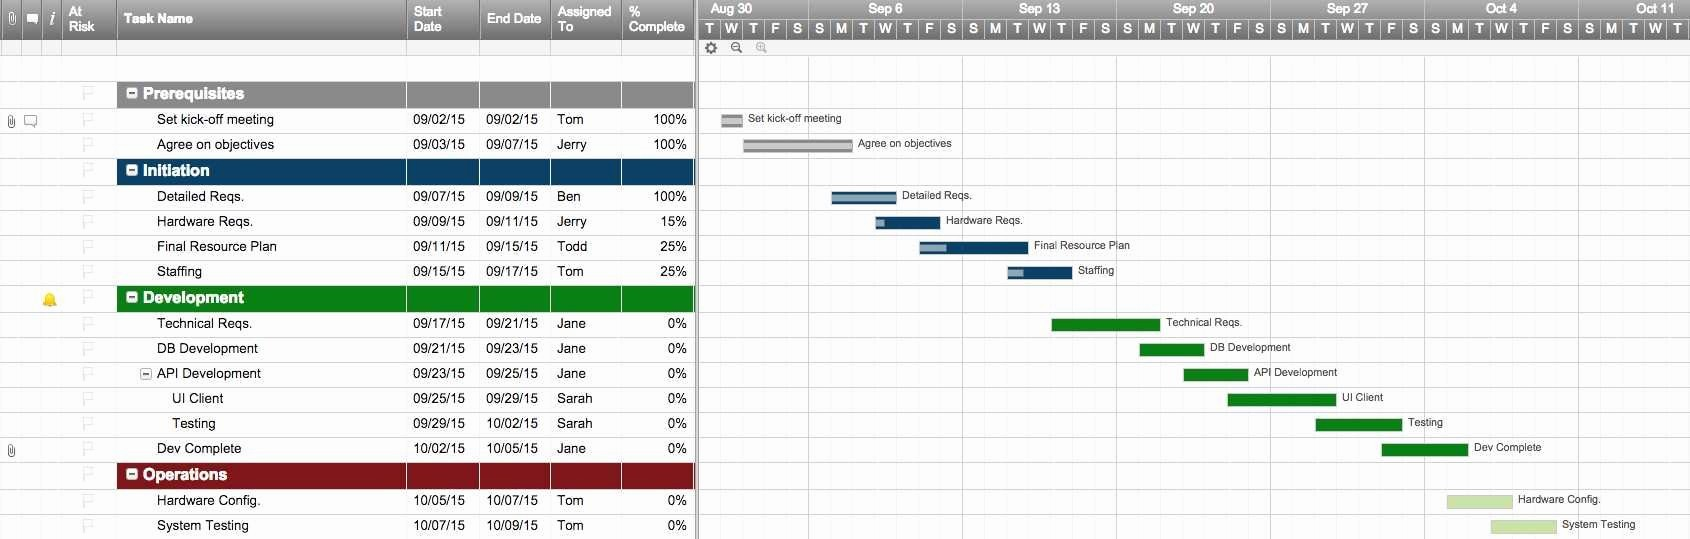 Excel Gantt Project Planner Template Awesome Awesome Gantt Project Planner Template with Microsoft